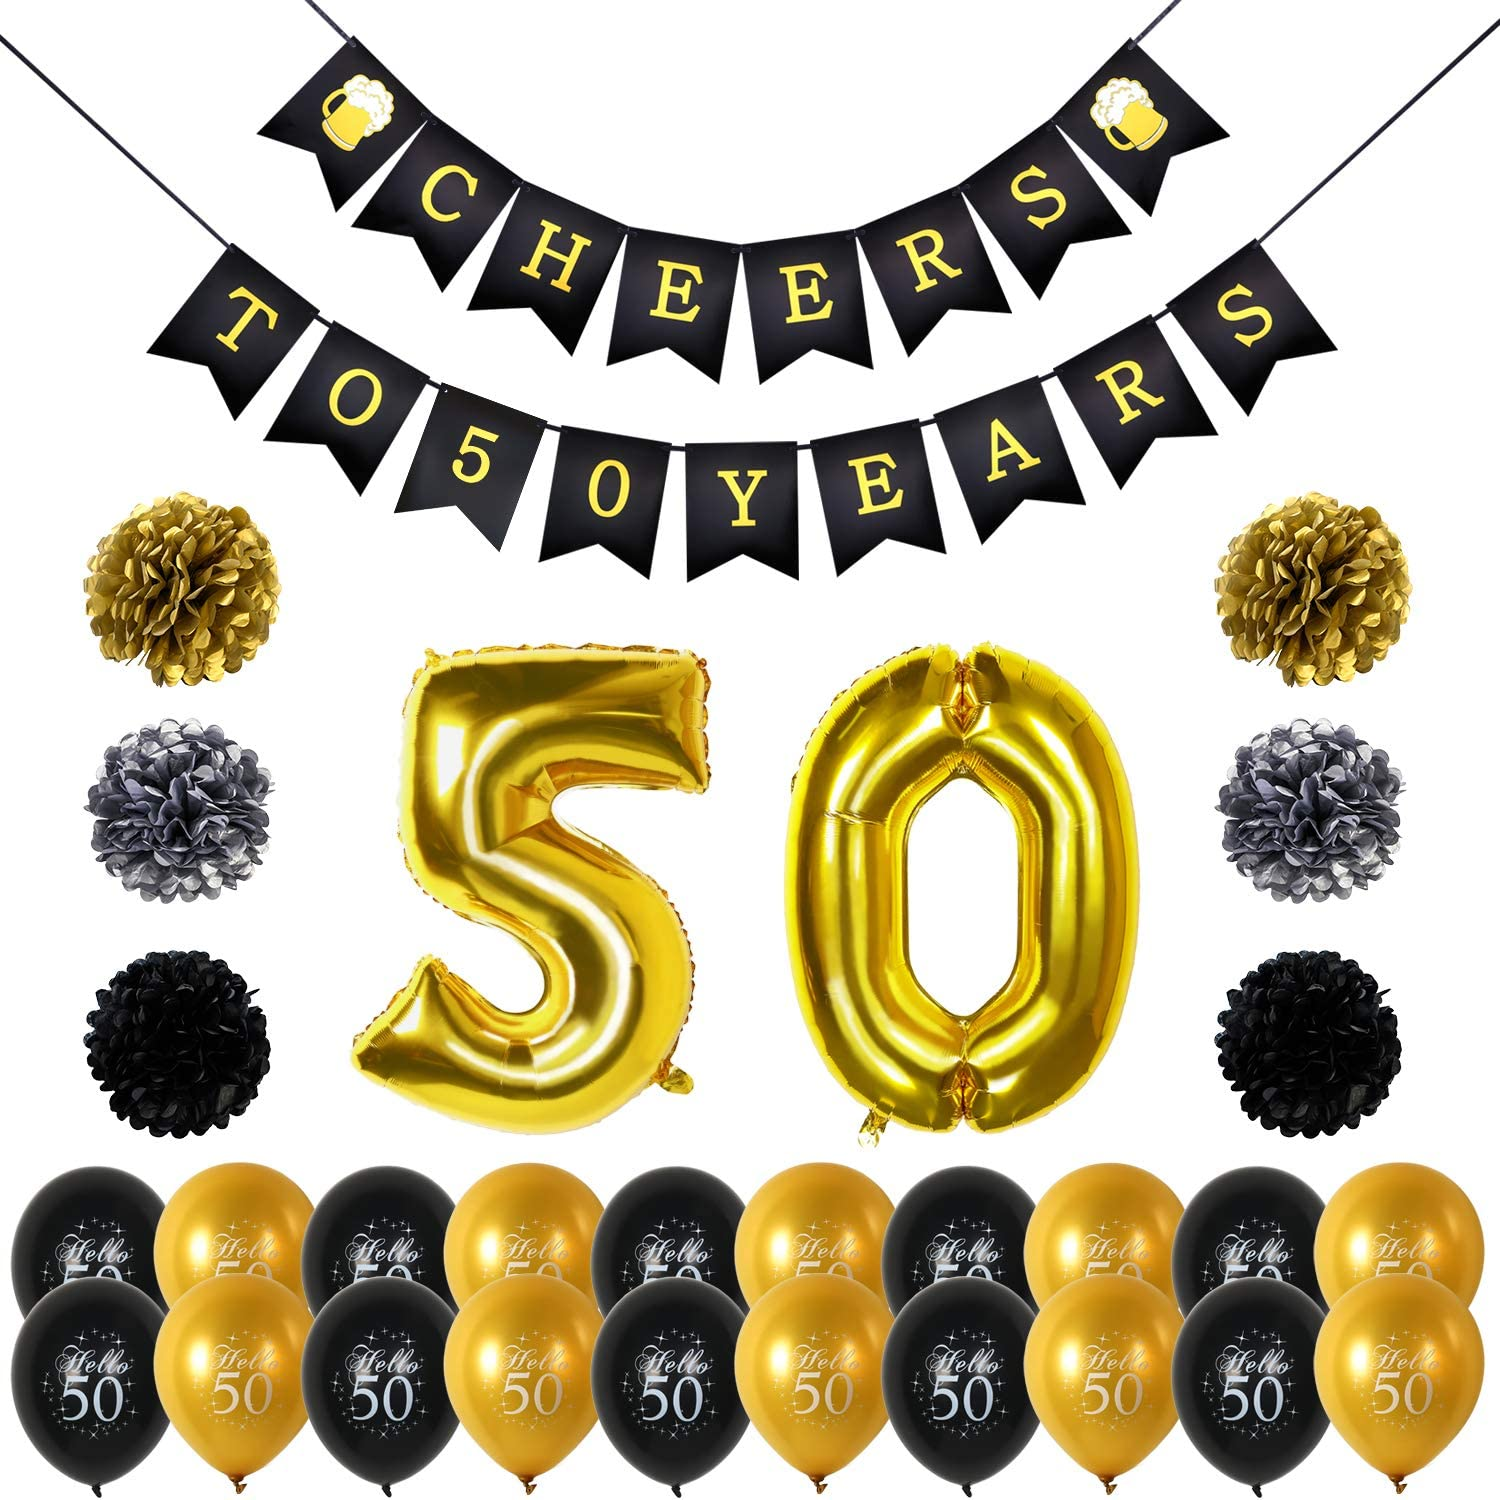 Number 50 Years Foil Balloons Large Tissue Paper Pom Poms for 50 Years Old Party Supplies Cheers to 50th Birthday Banner 20pcs Black Gold Latex Ballon Konsait 50th Birthday Party Decorations Kit